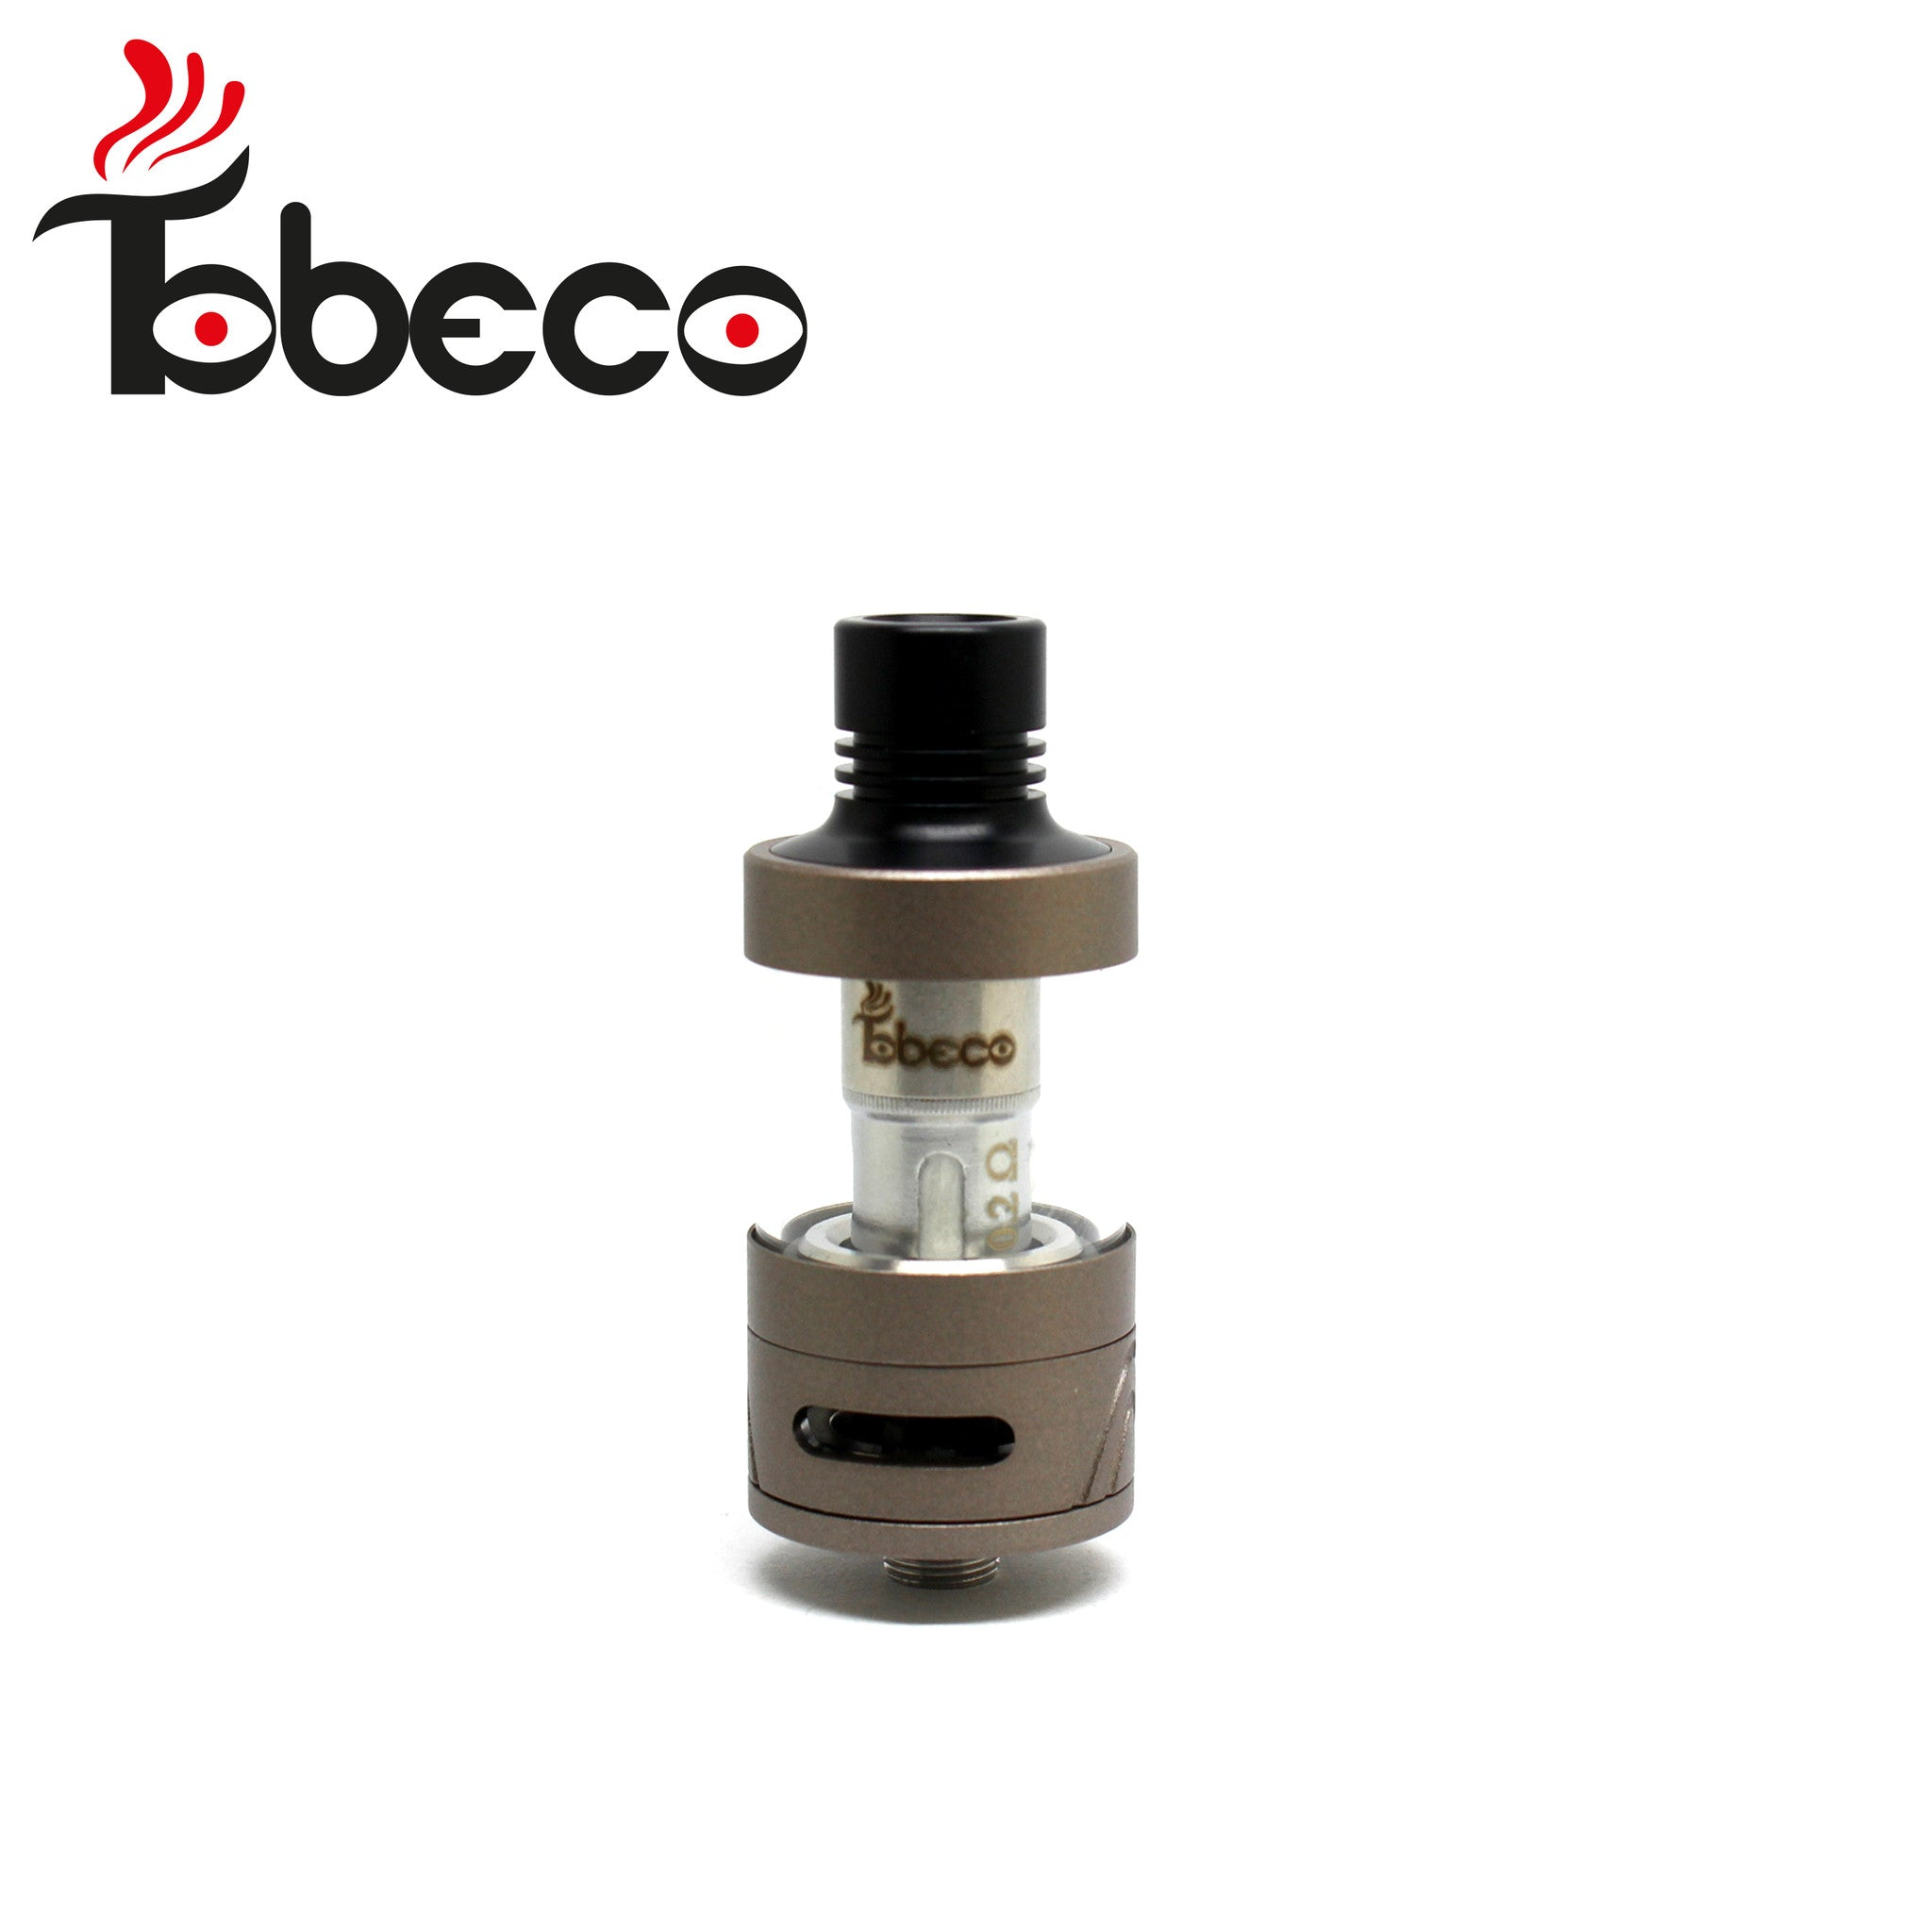 TOBECO AUTHENTIC SUB OHM * MINI * SUPERTANK SUPER TANK CLEAROMIZER TANK 0.2OHM & 0.5OHM COIL